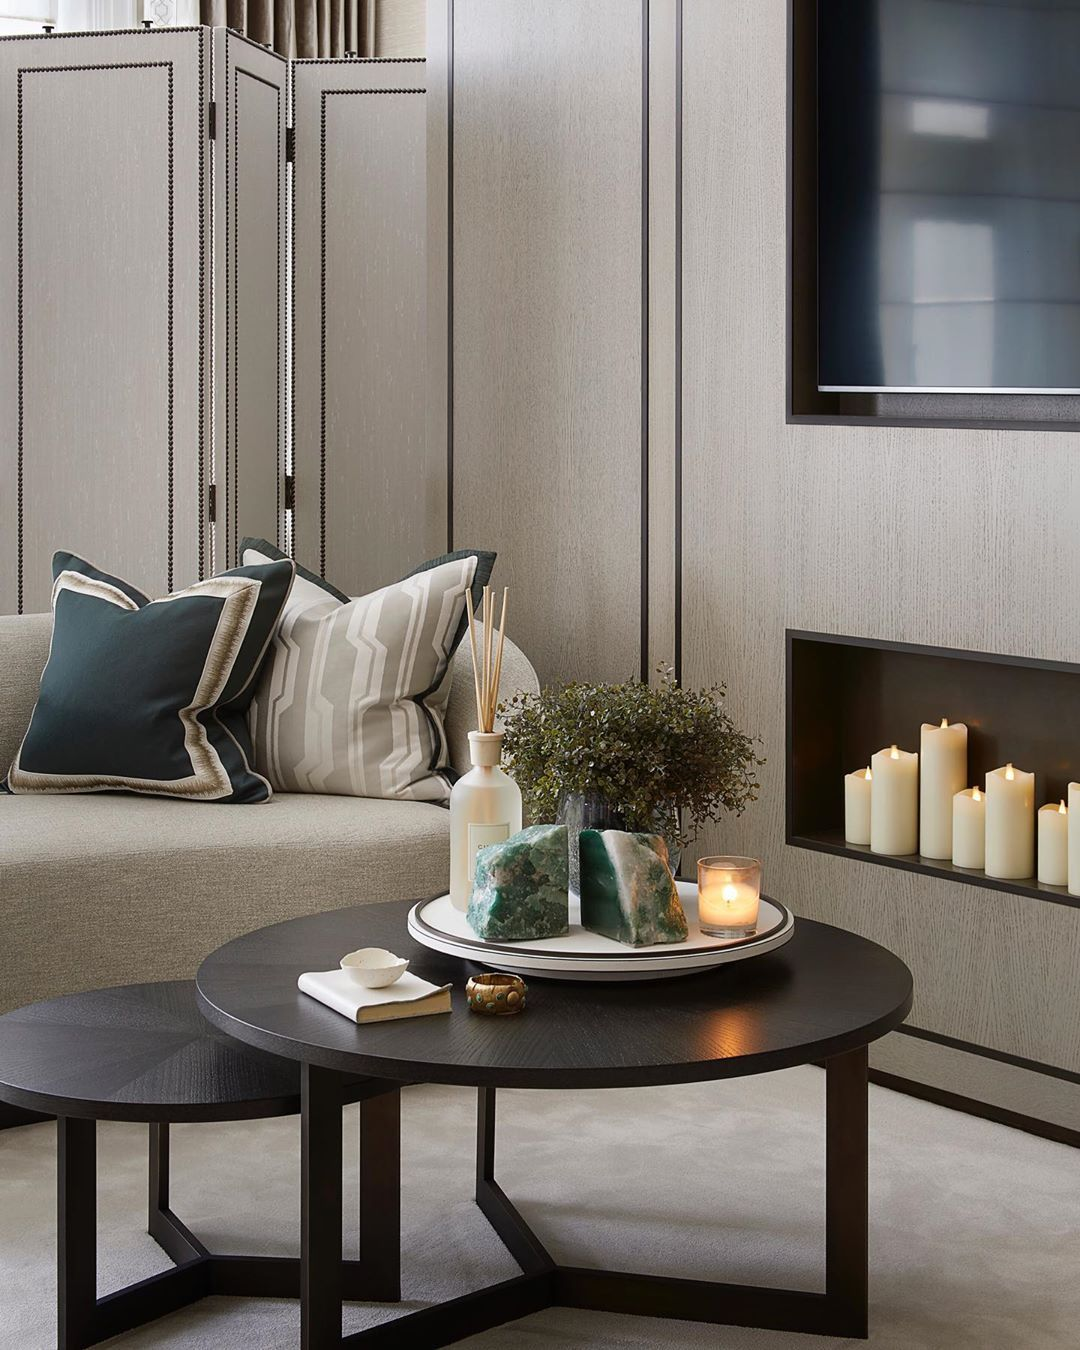 Sophie Paterson On Instagram The Sitting Area In This Master Bedroom We Designed By H In 2020 Living Room Design Decor Living Room Decor Inspiration Home Room Design #sitting #area #in #living #room